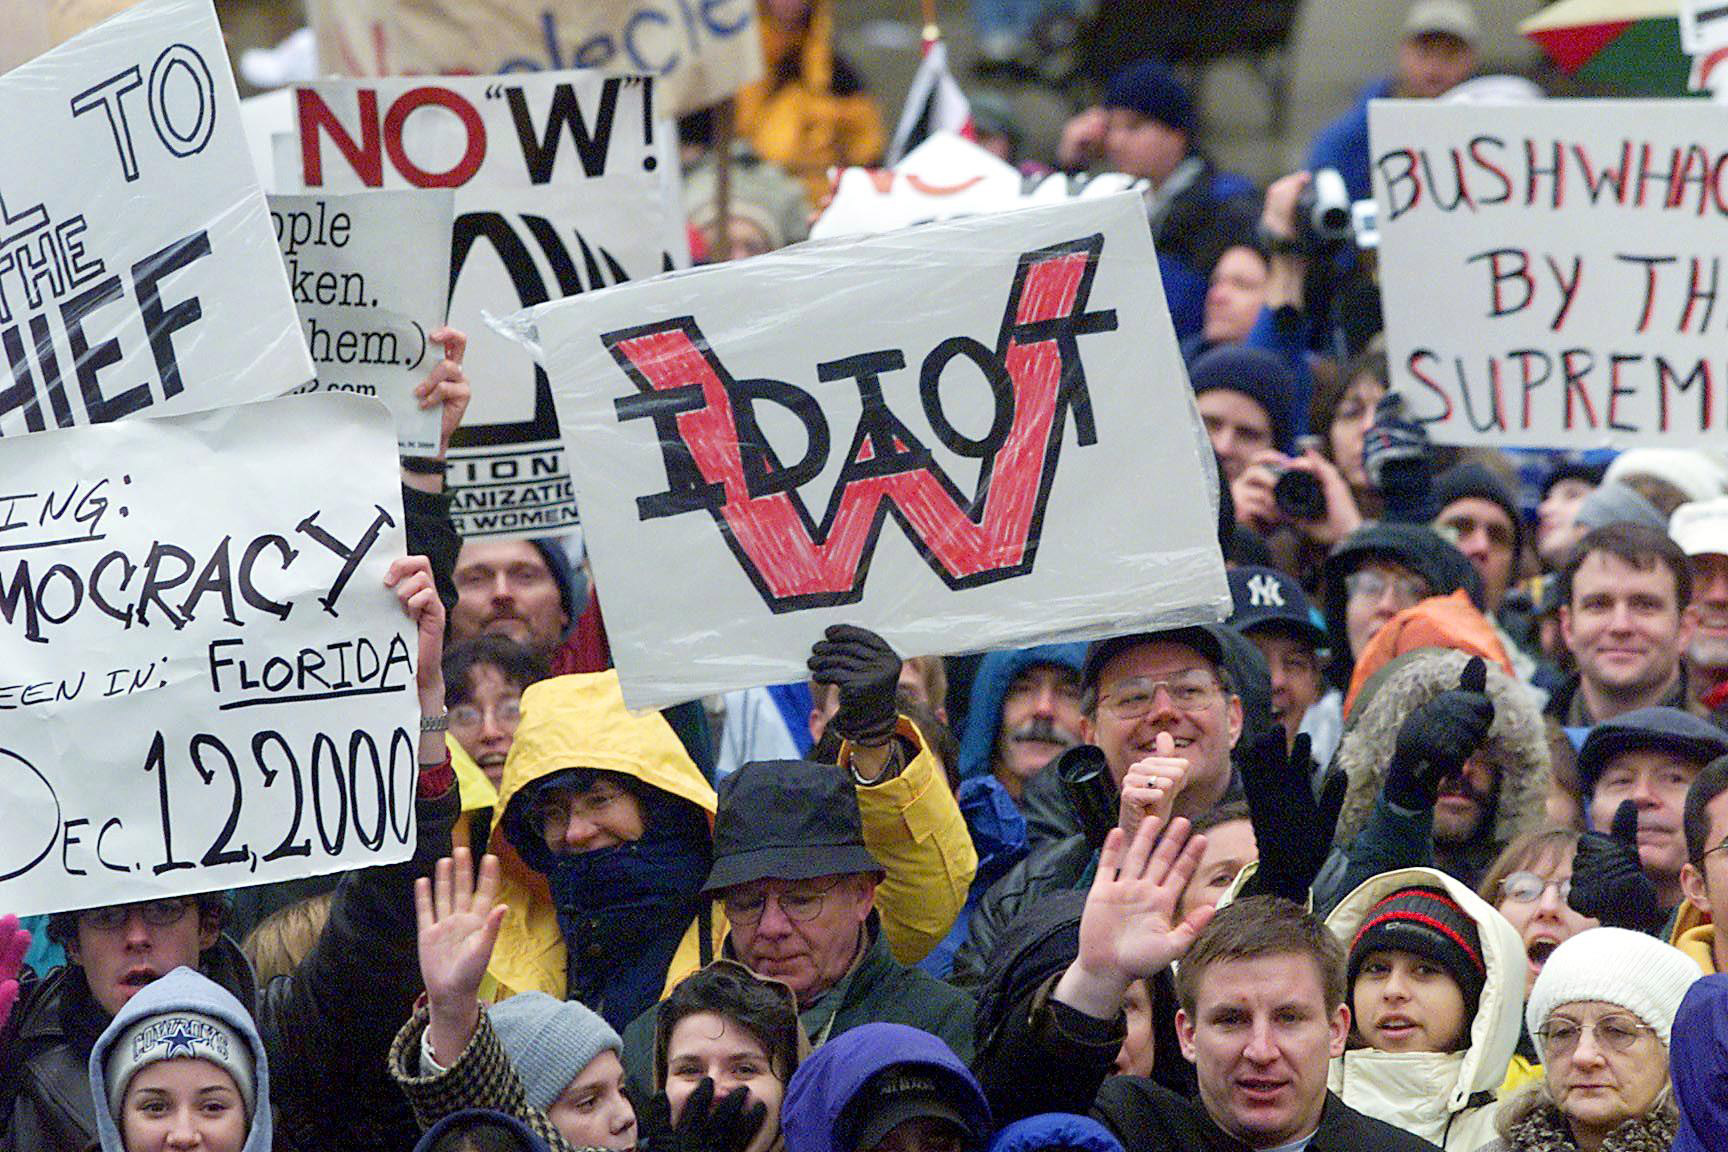 Demonstrators make their feelings known as they crowd along the George W. Bush inauguration parade route on Jan. 20, 2001, in Washington, D.C.